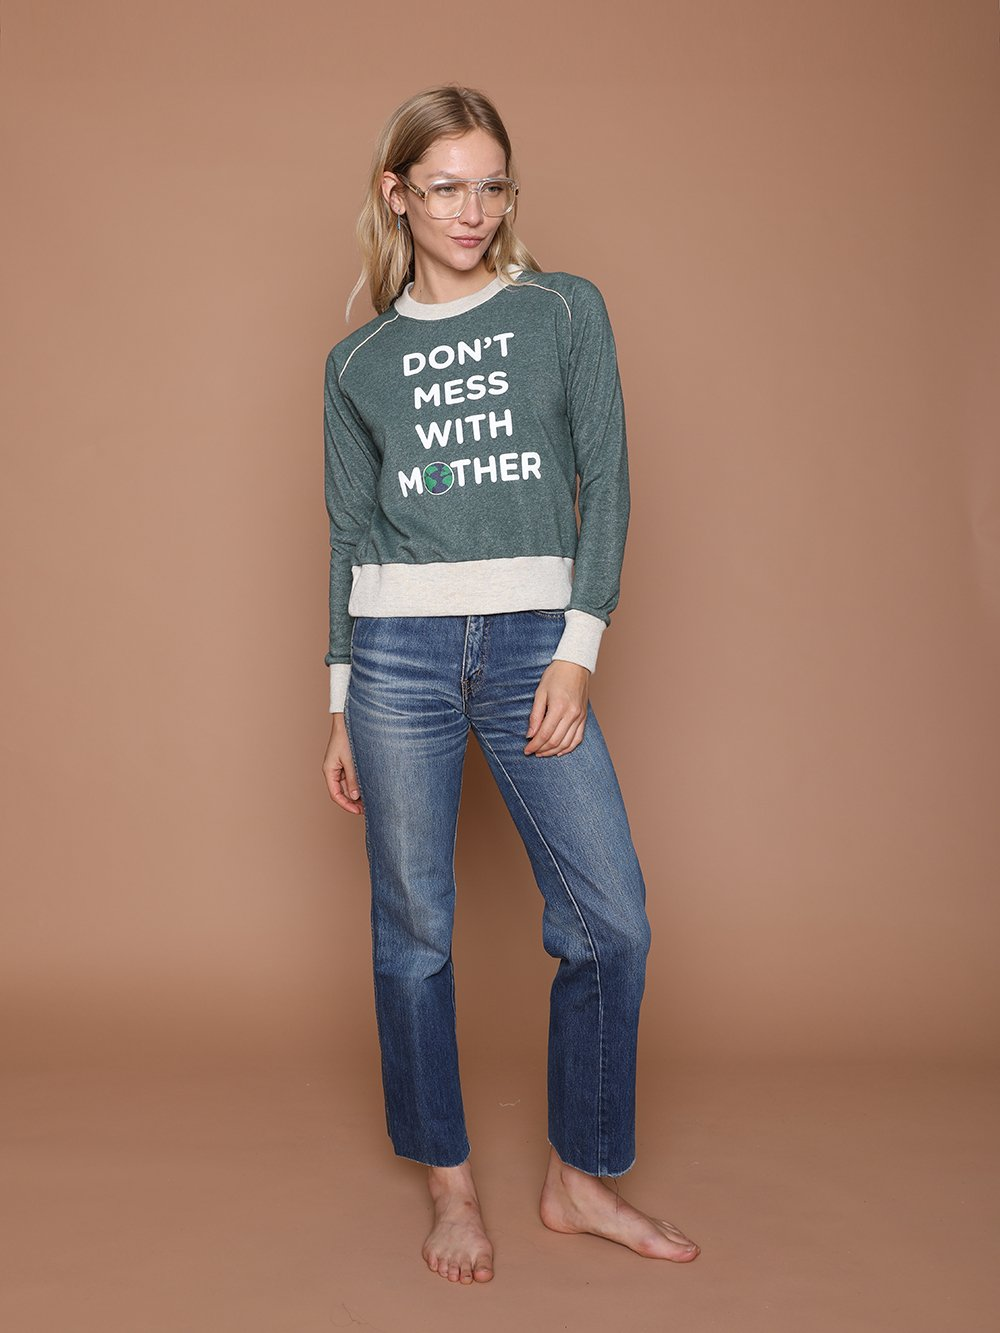 DON'T MESS WITH MOTHER SWEATSHIRT